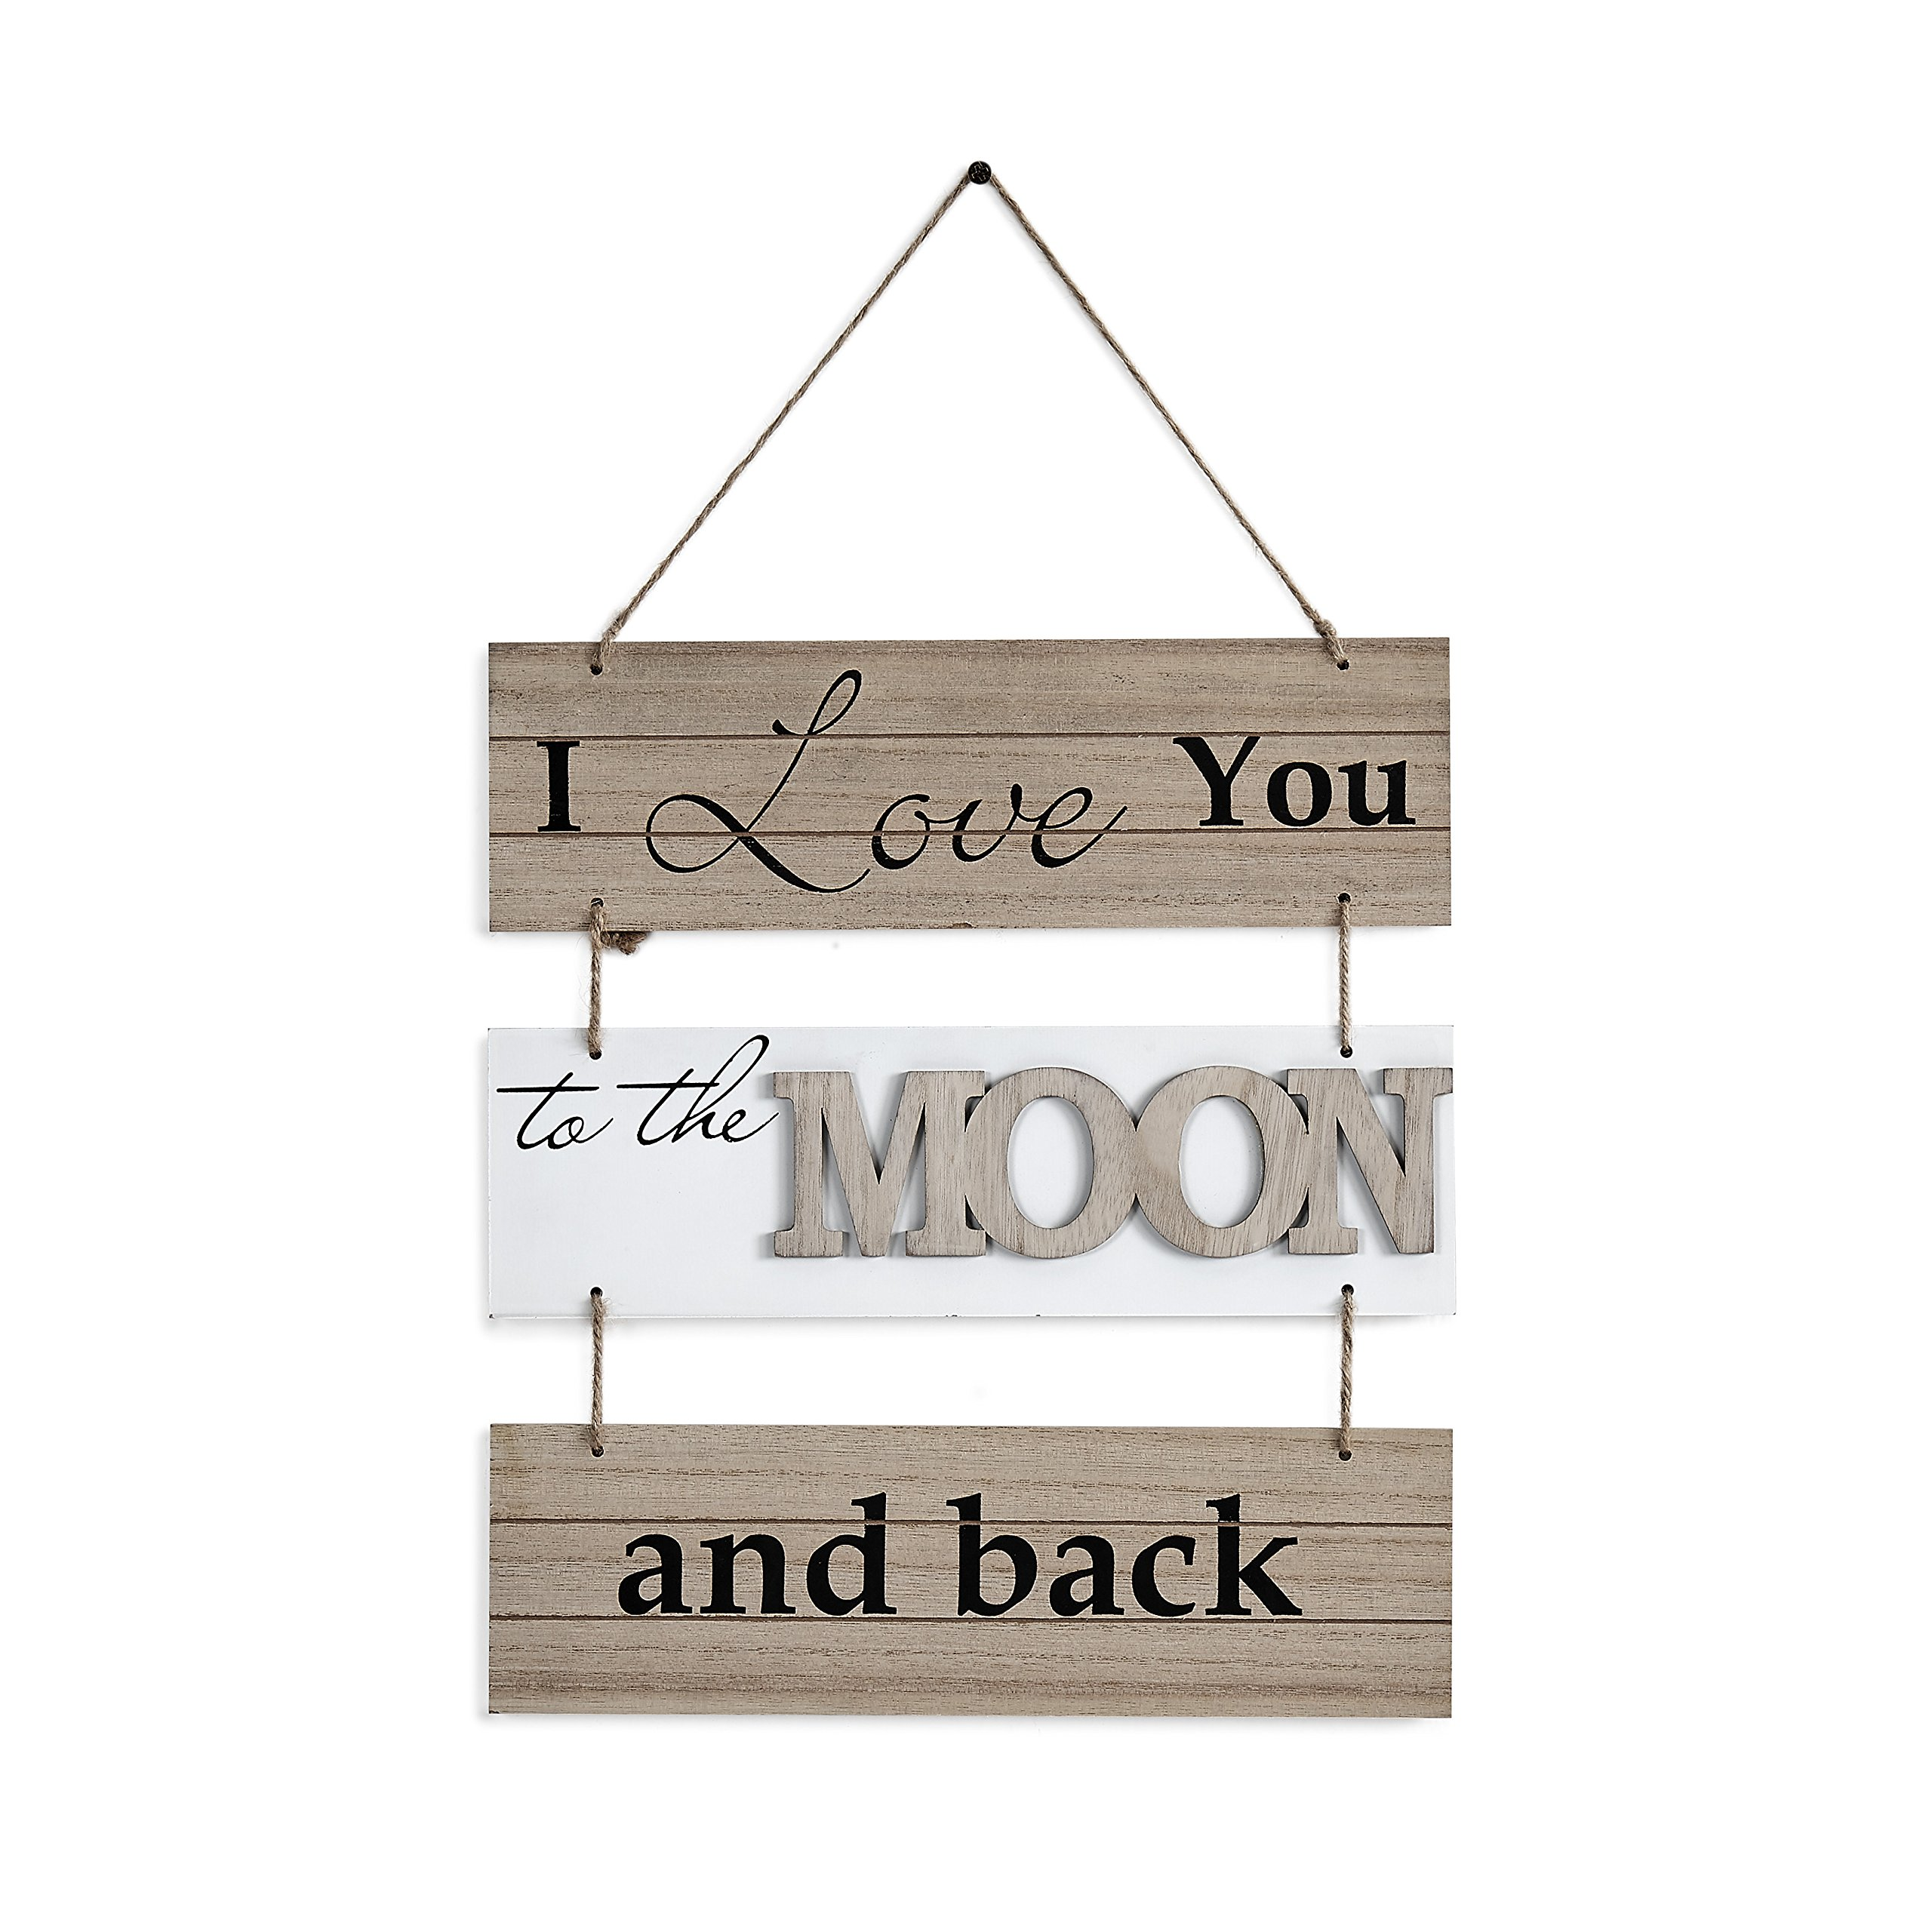 Danya B. ''I Love to the Moon and Back'' Sectioned Wooden Wall Plaque by Danya B (Image #1)